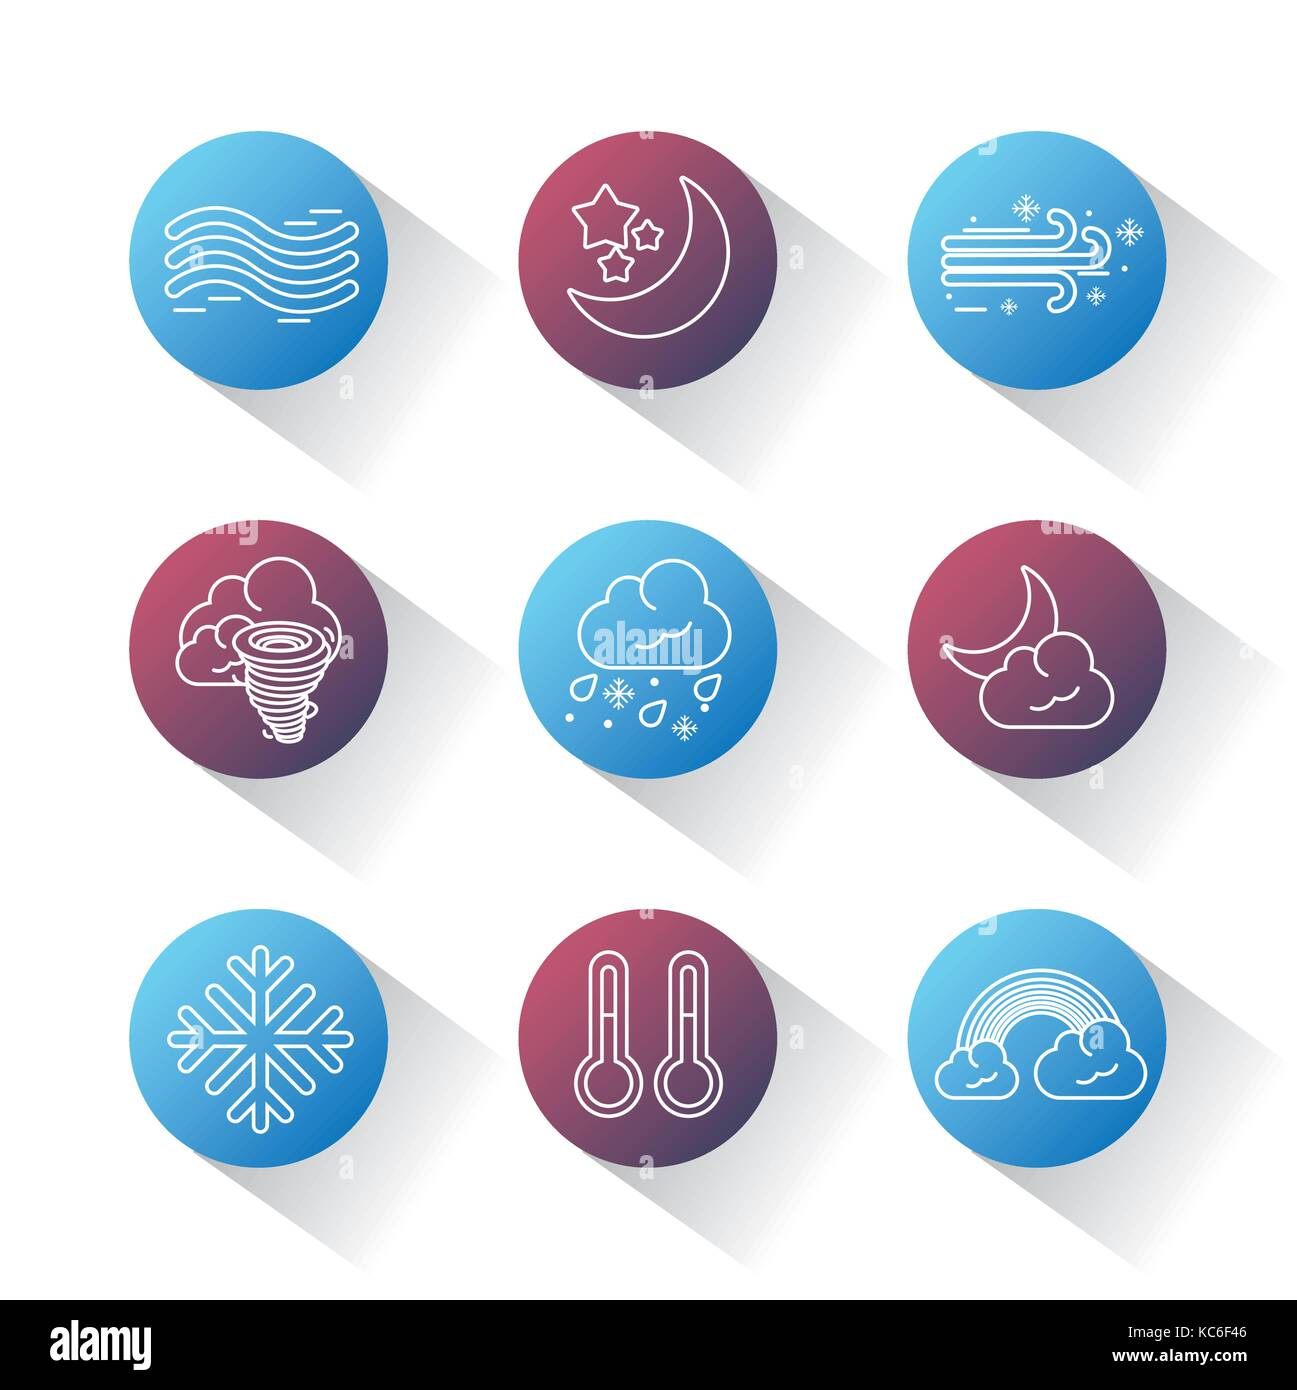 Weather Forecast Symbols Cut Out Stock Images Pictures Alamy